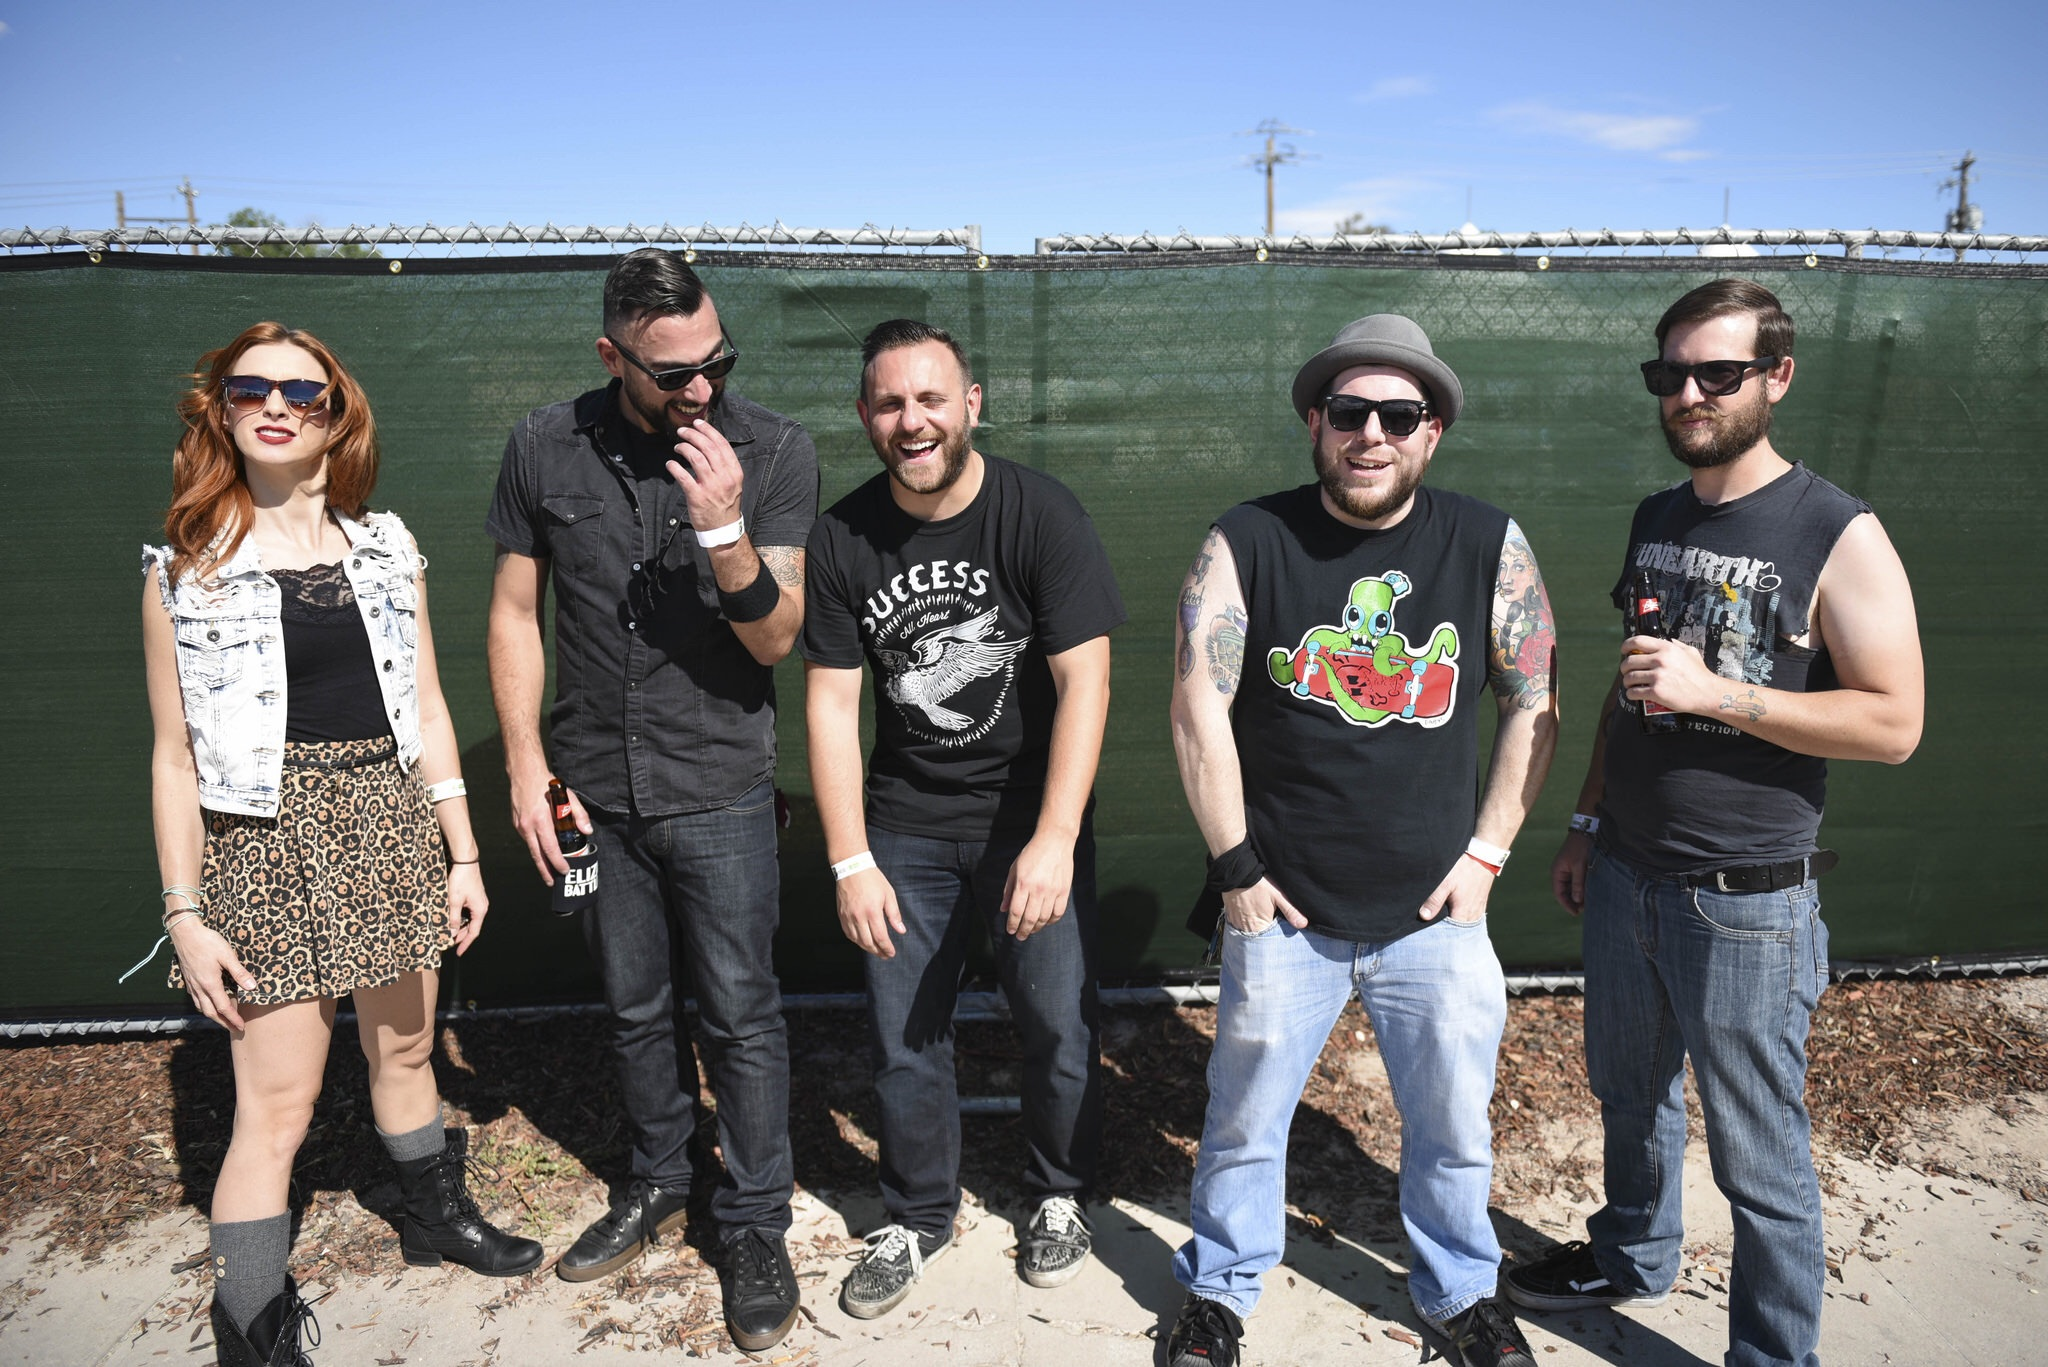 Eliza Battle posed for a photo at Punk Rock Bowling in downtown Las Vegas.